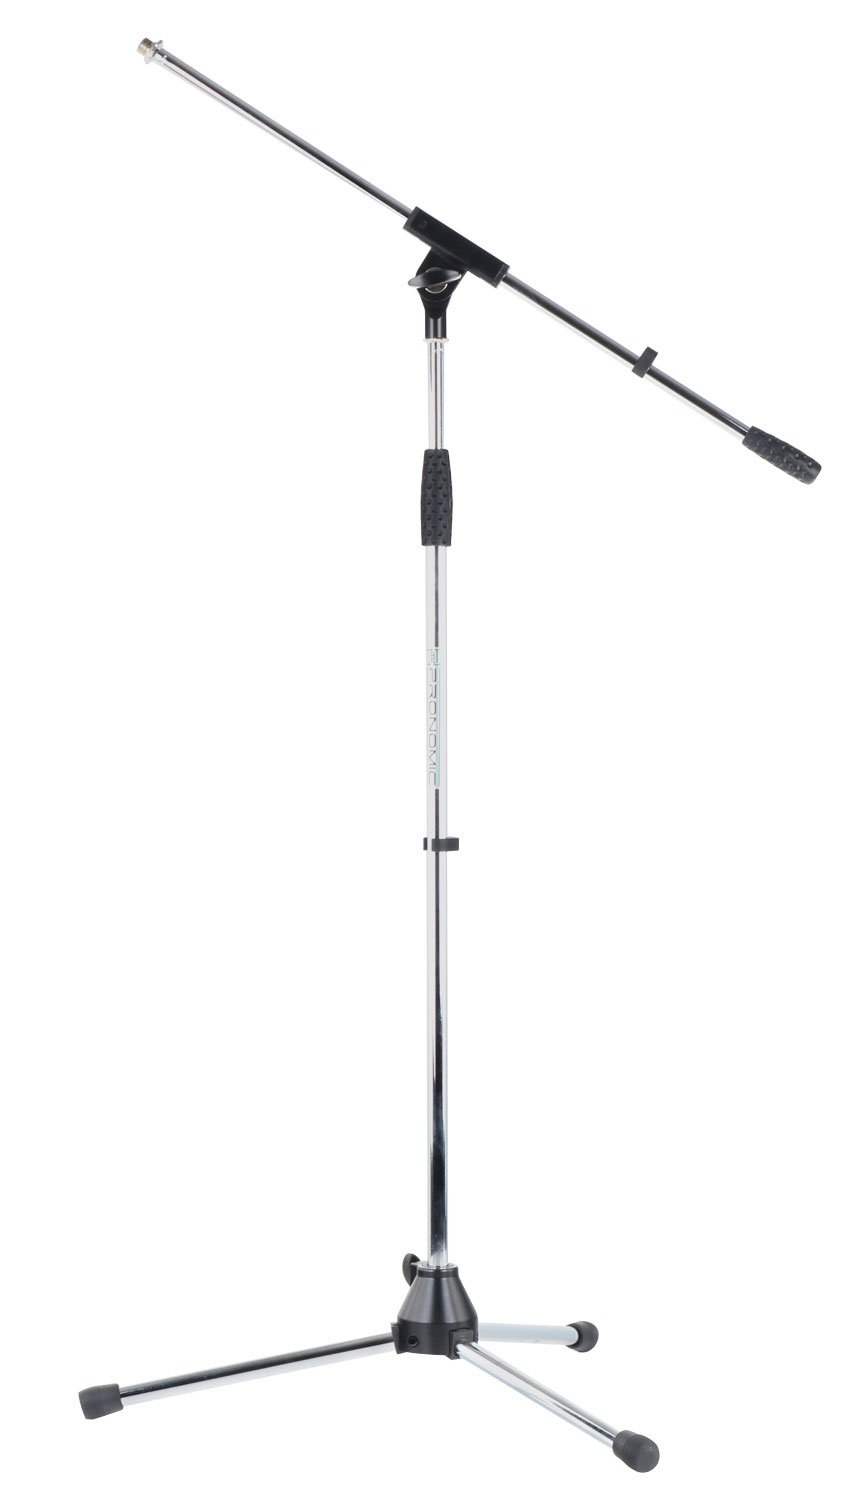 Pronomic MS-25C Microphone Stand Boom (Sturdy 3-legged Boom Stand, Height-Adjustable, Including Adjustment Screw and Cable Clips, Chrome) 00028049